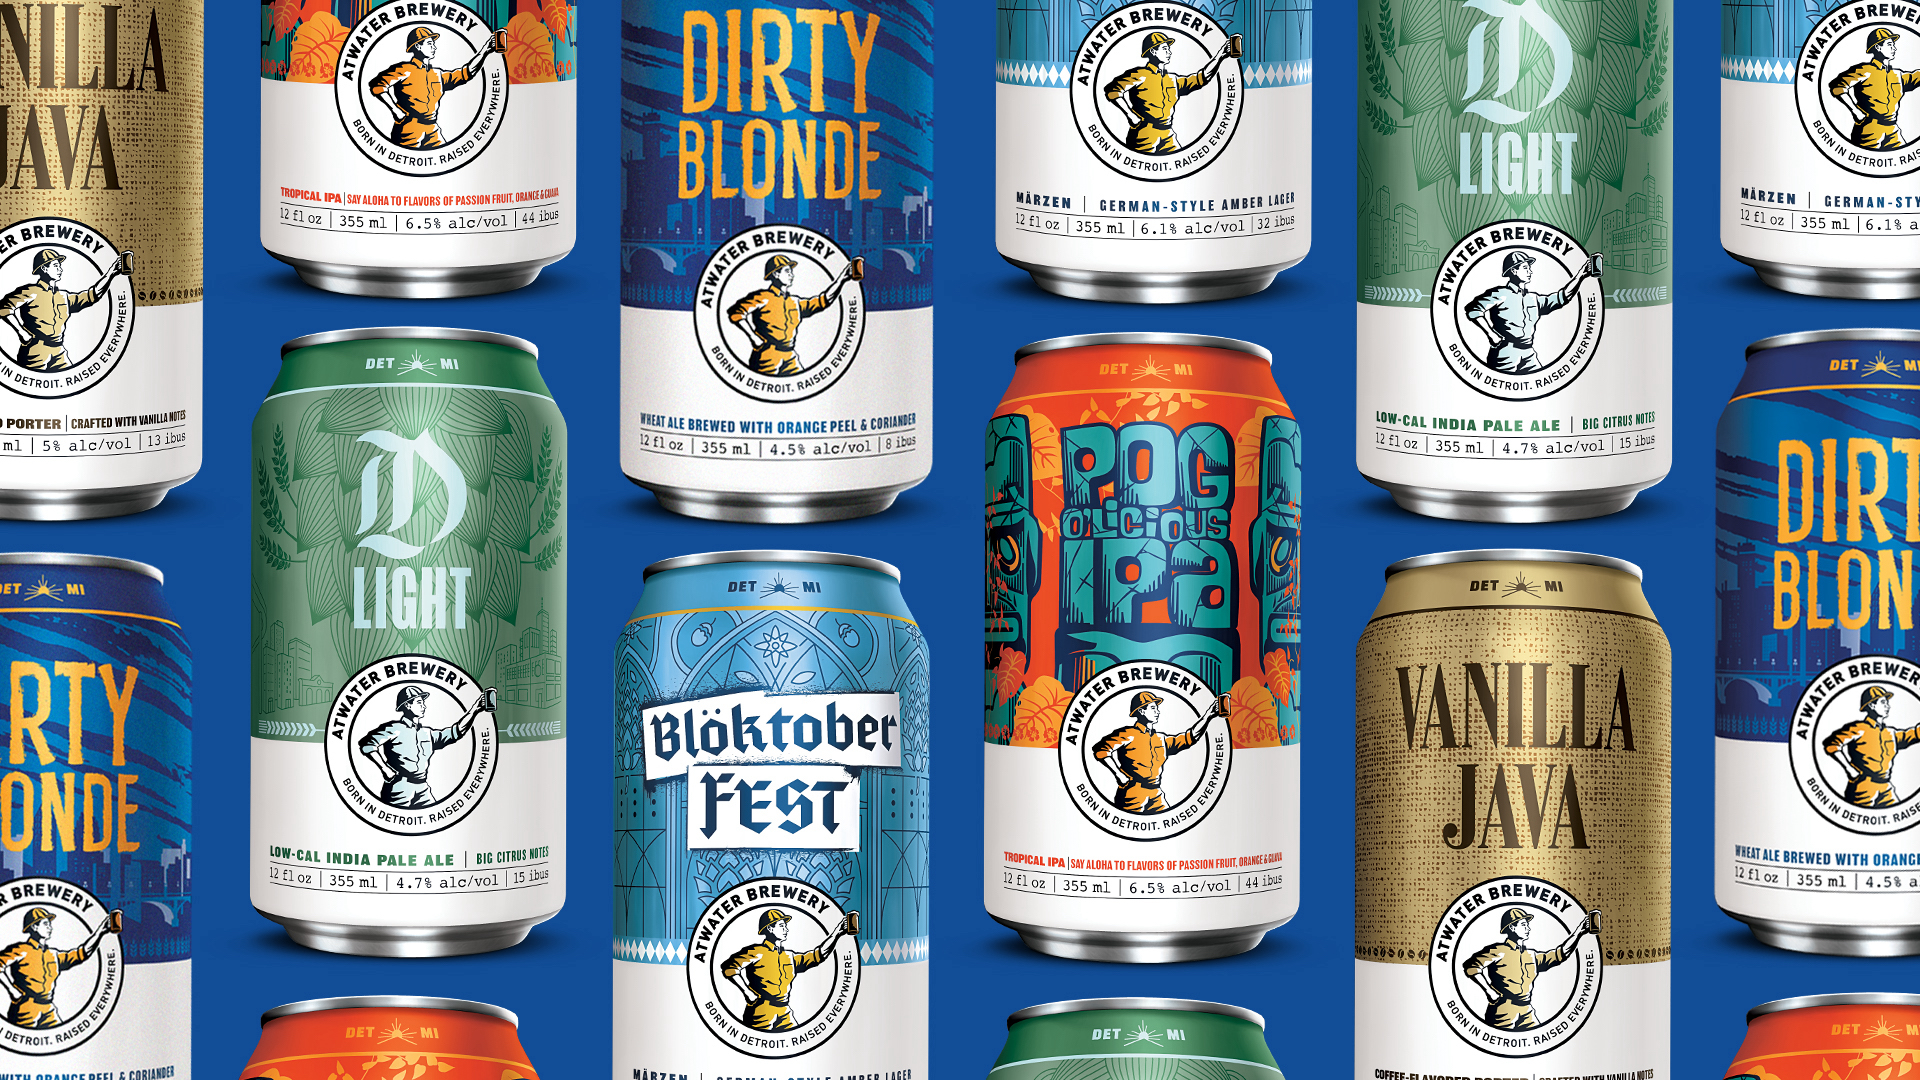 Atwater Brewery Rolls Out New Branding and Packaging